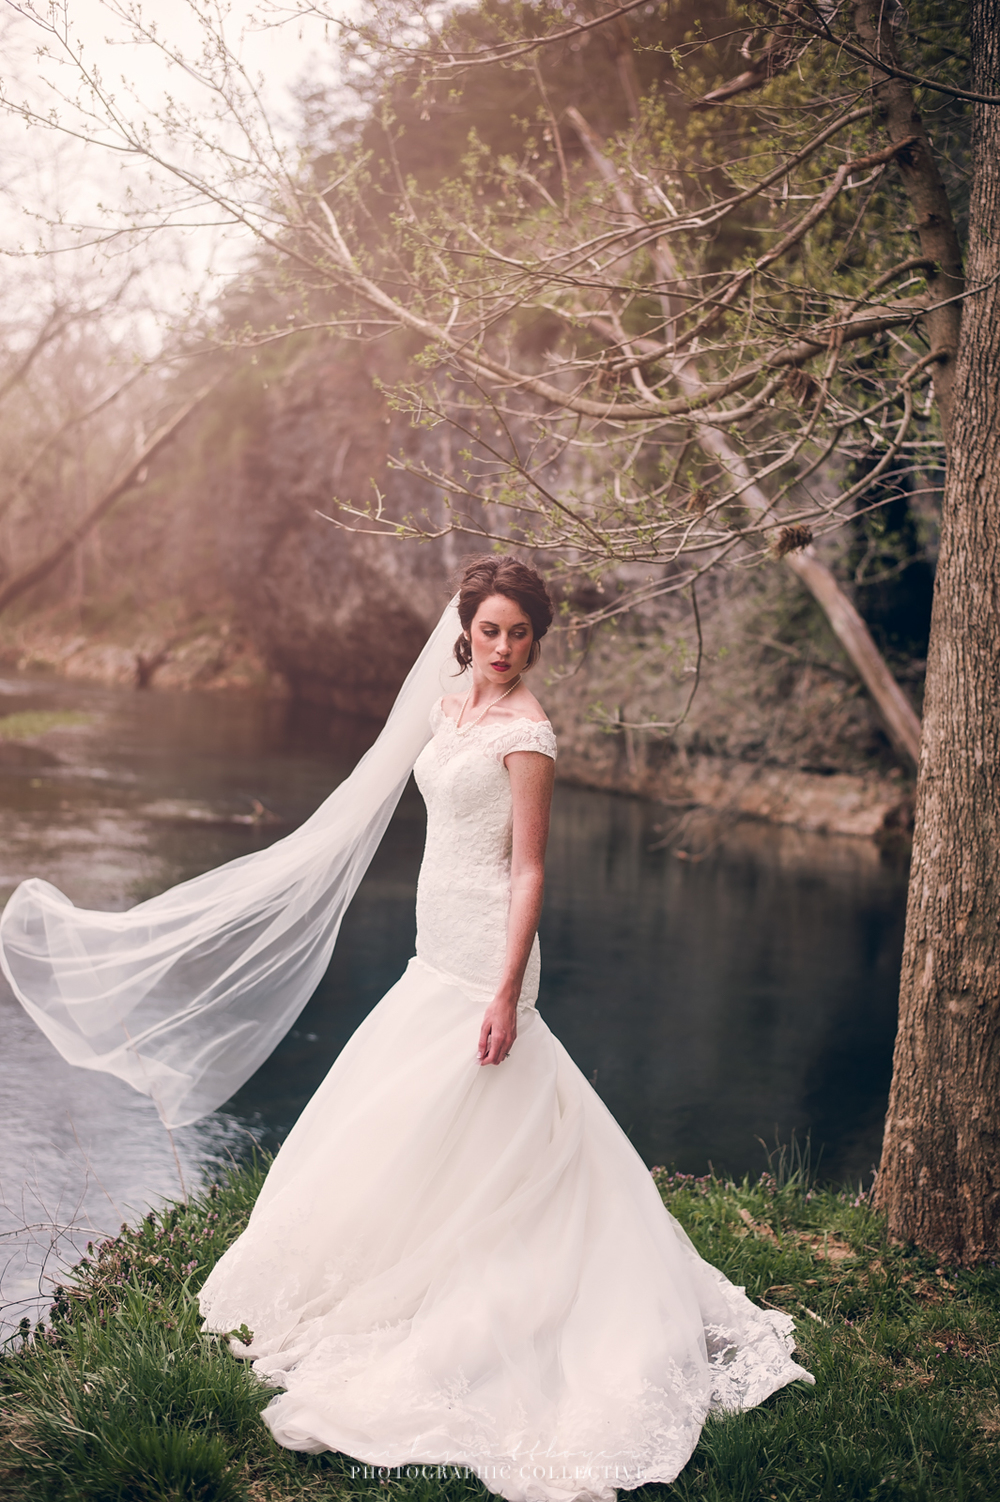 haley.bridalsession.2015mileswittboyer-45.jpg